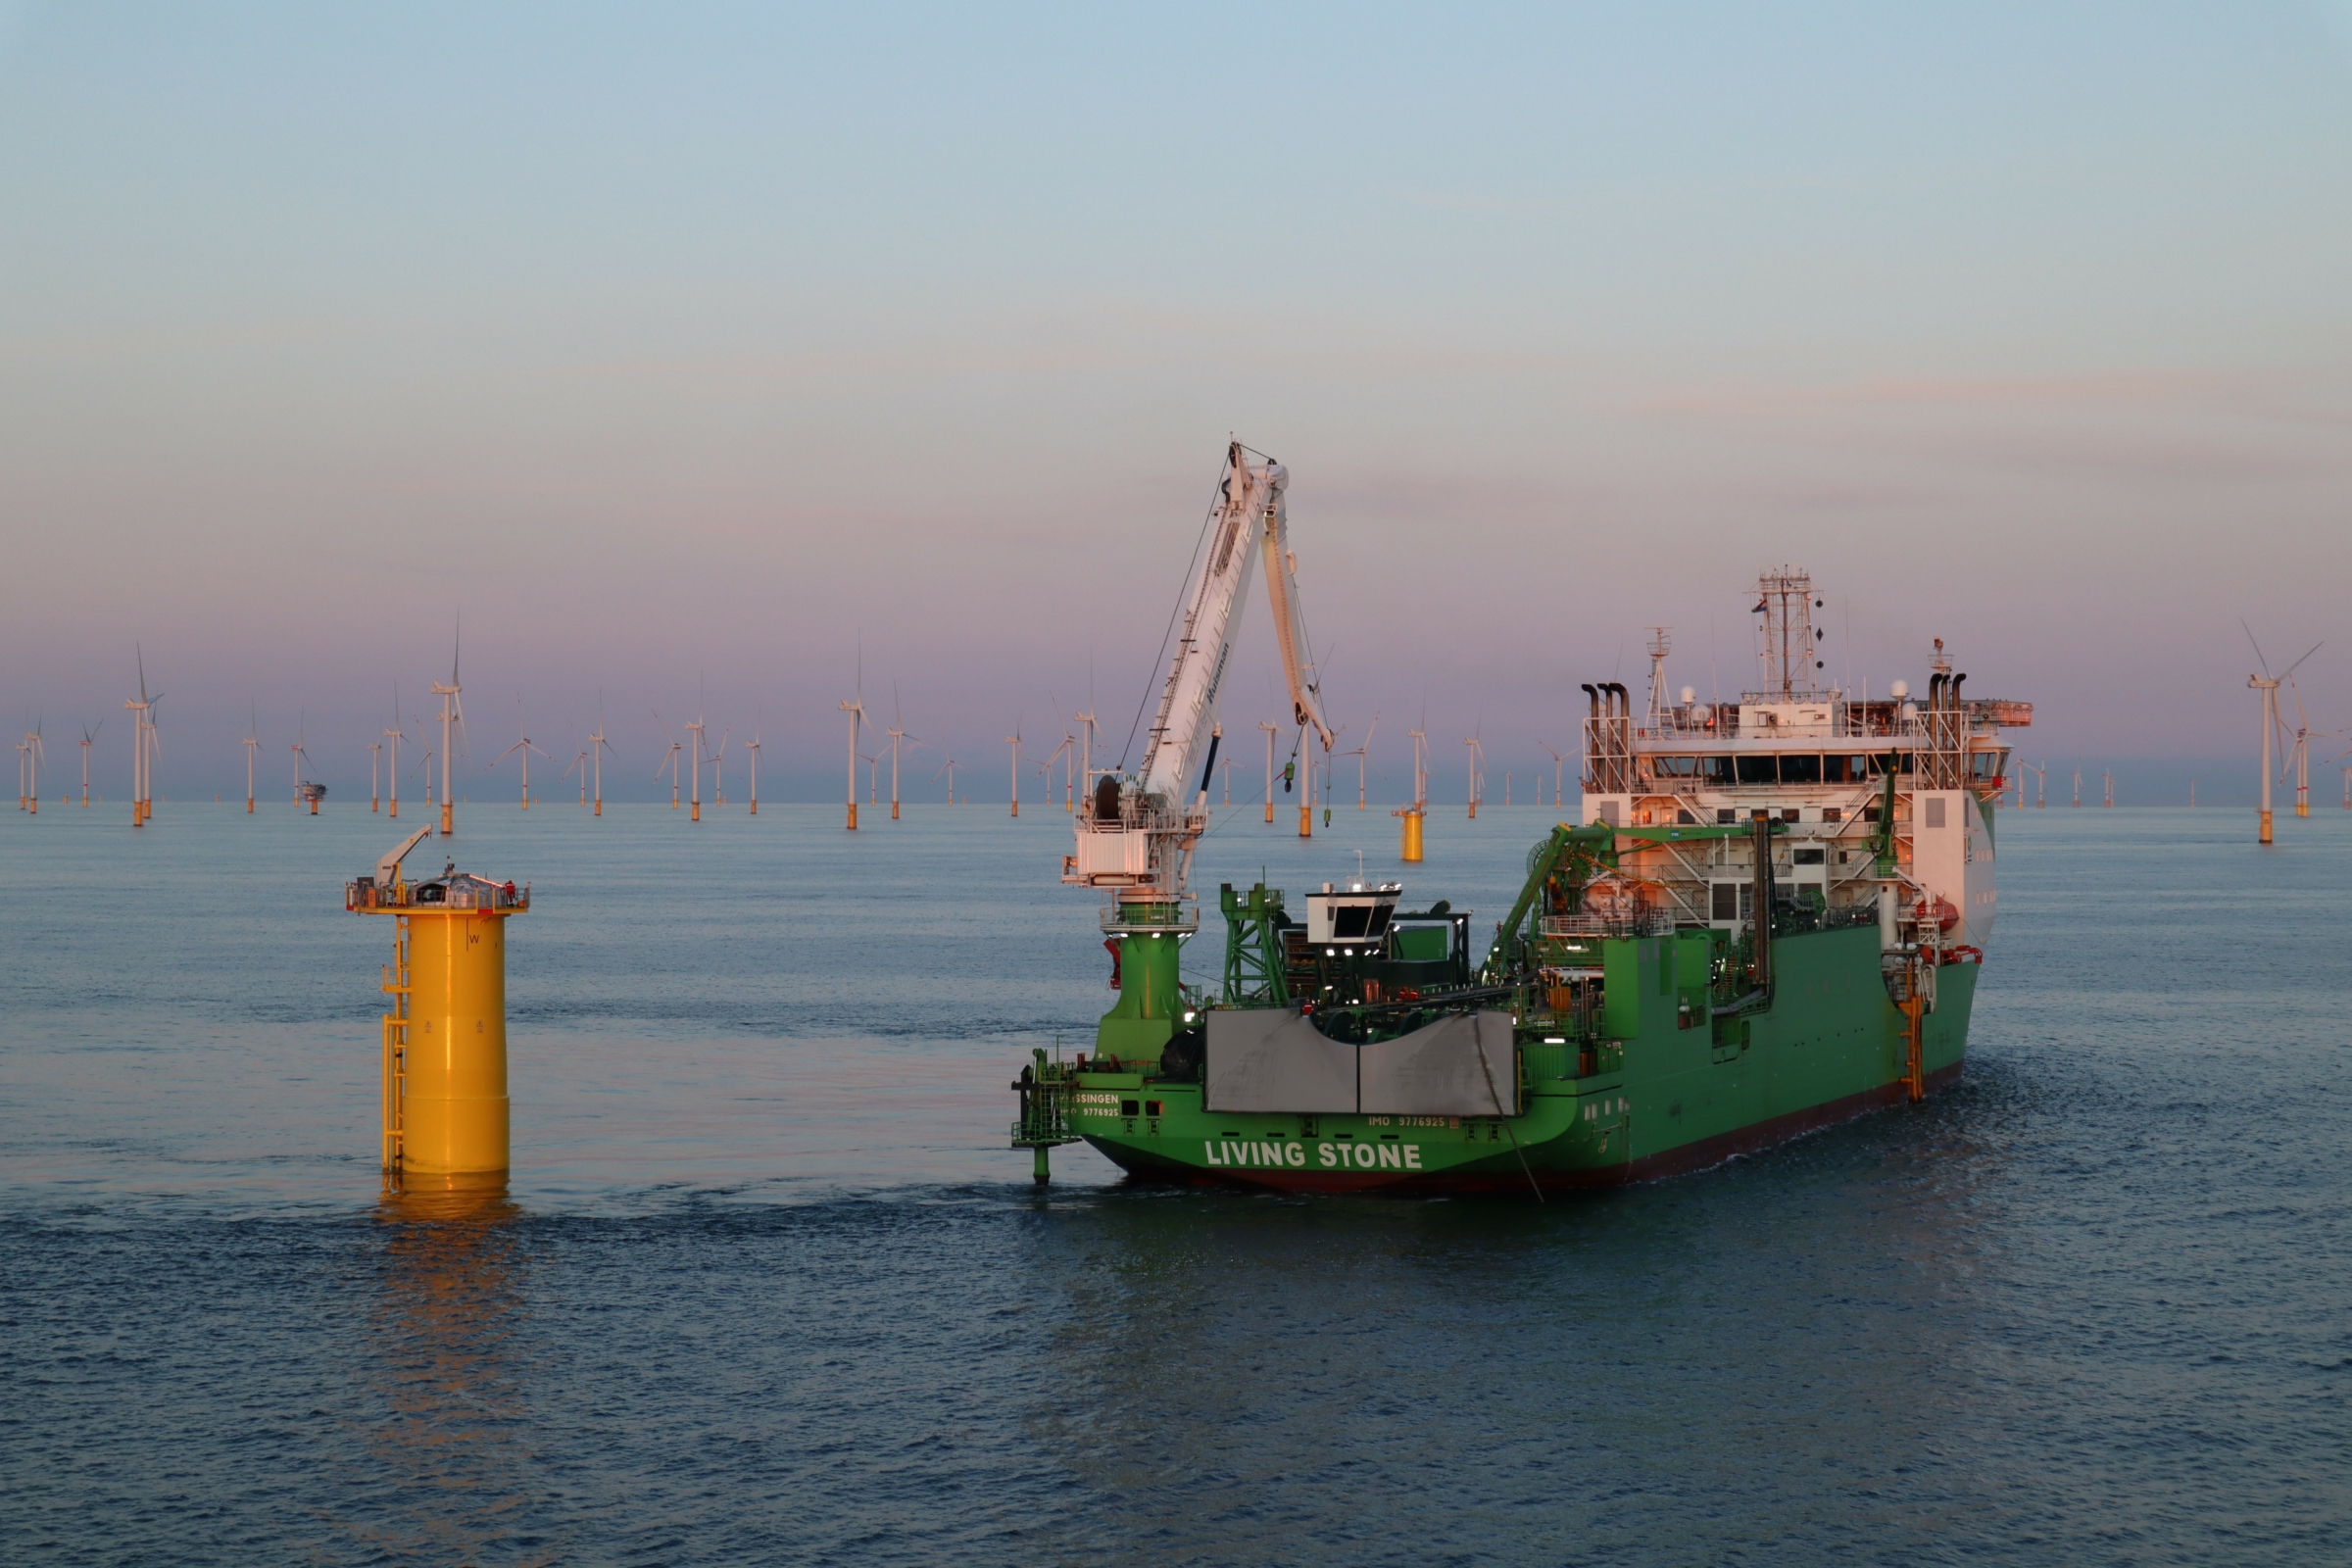 Living Stone's peak production levels ensure inter-array cable laying works at SeaMade offshore wind farm are achieved in record time